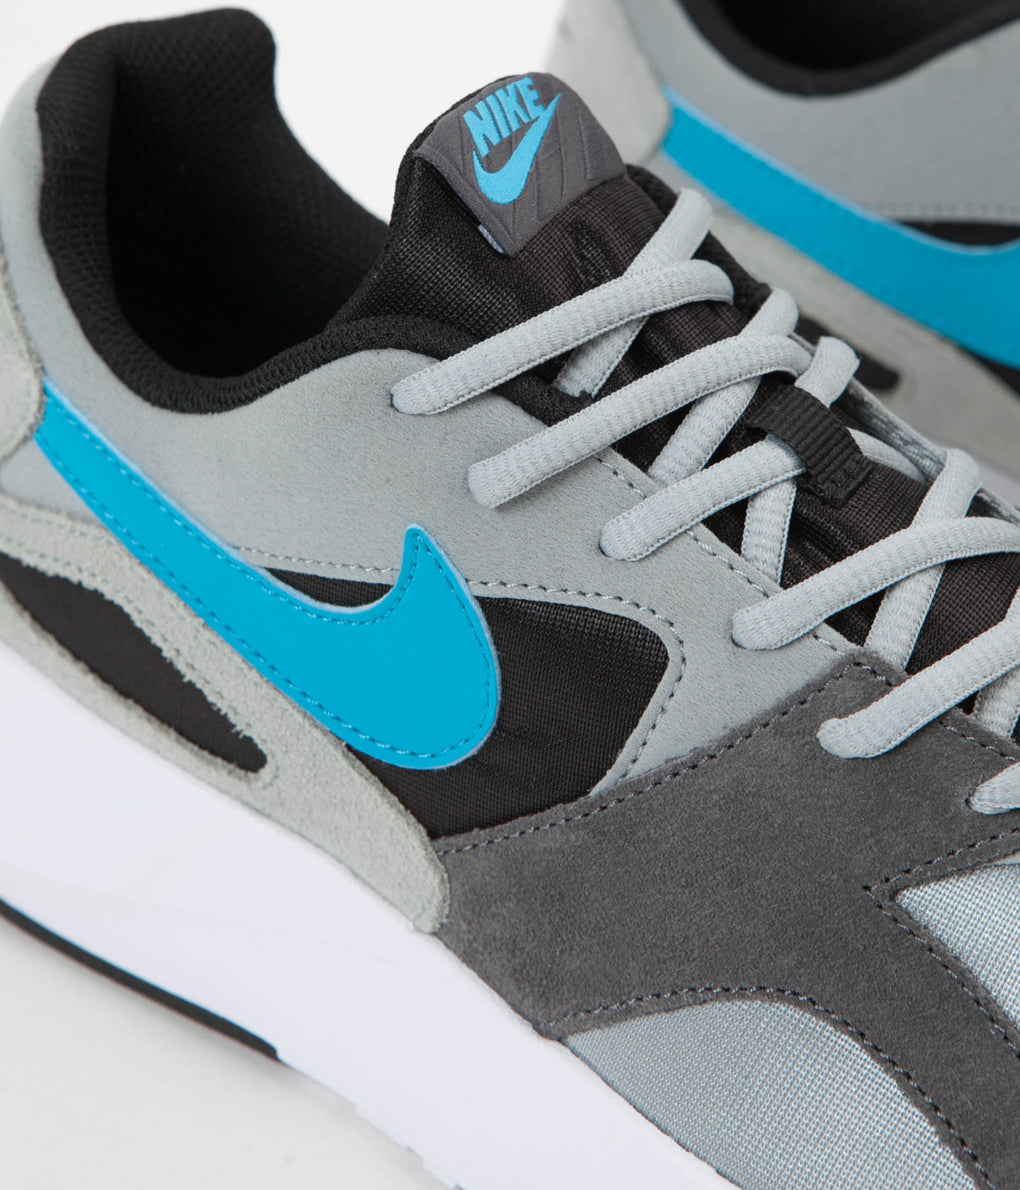 Nike Pantheos Shoes - Light Pumice / Light Blue Fury - Dark Grey